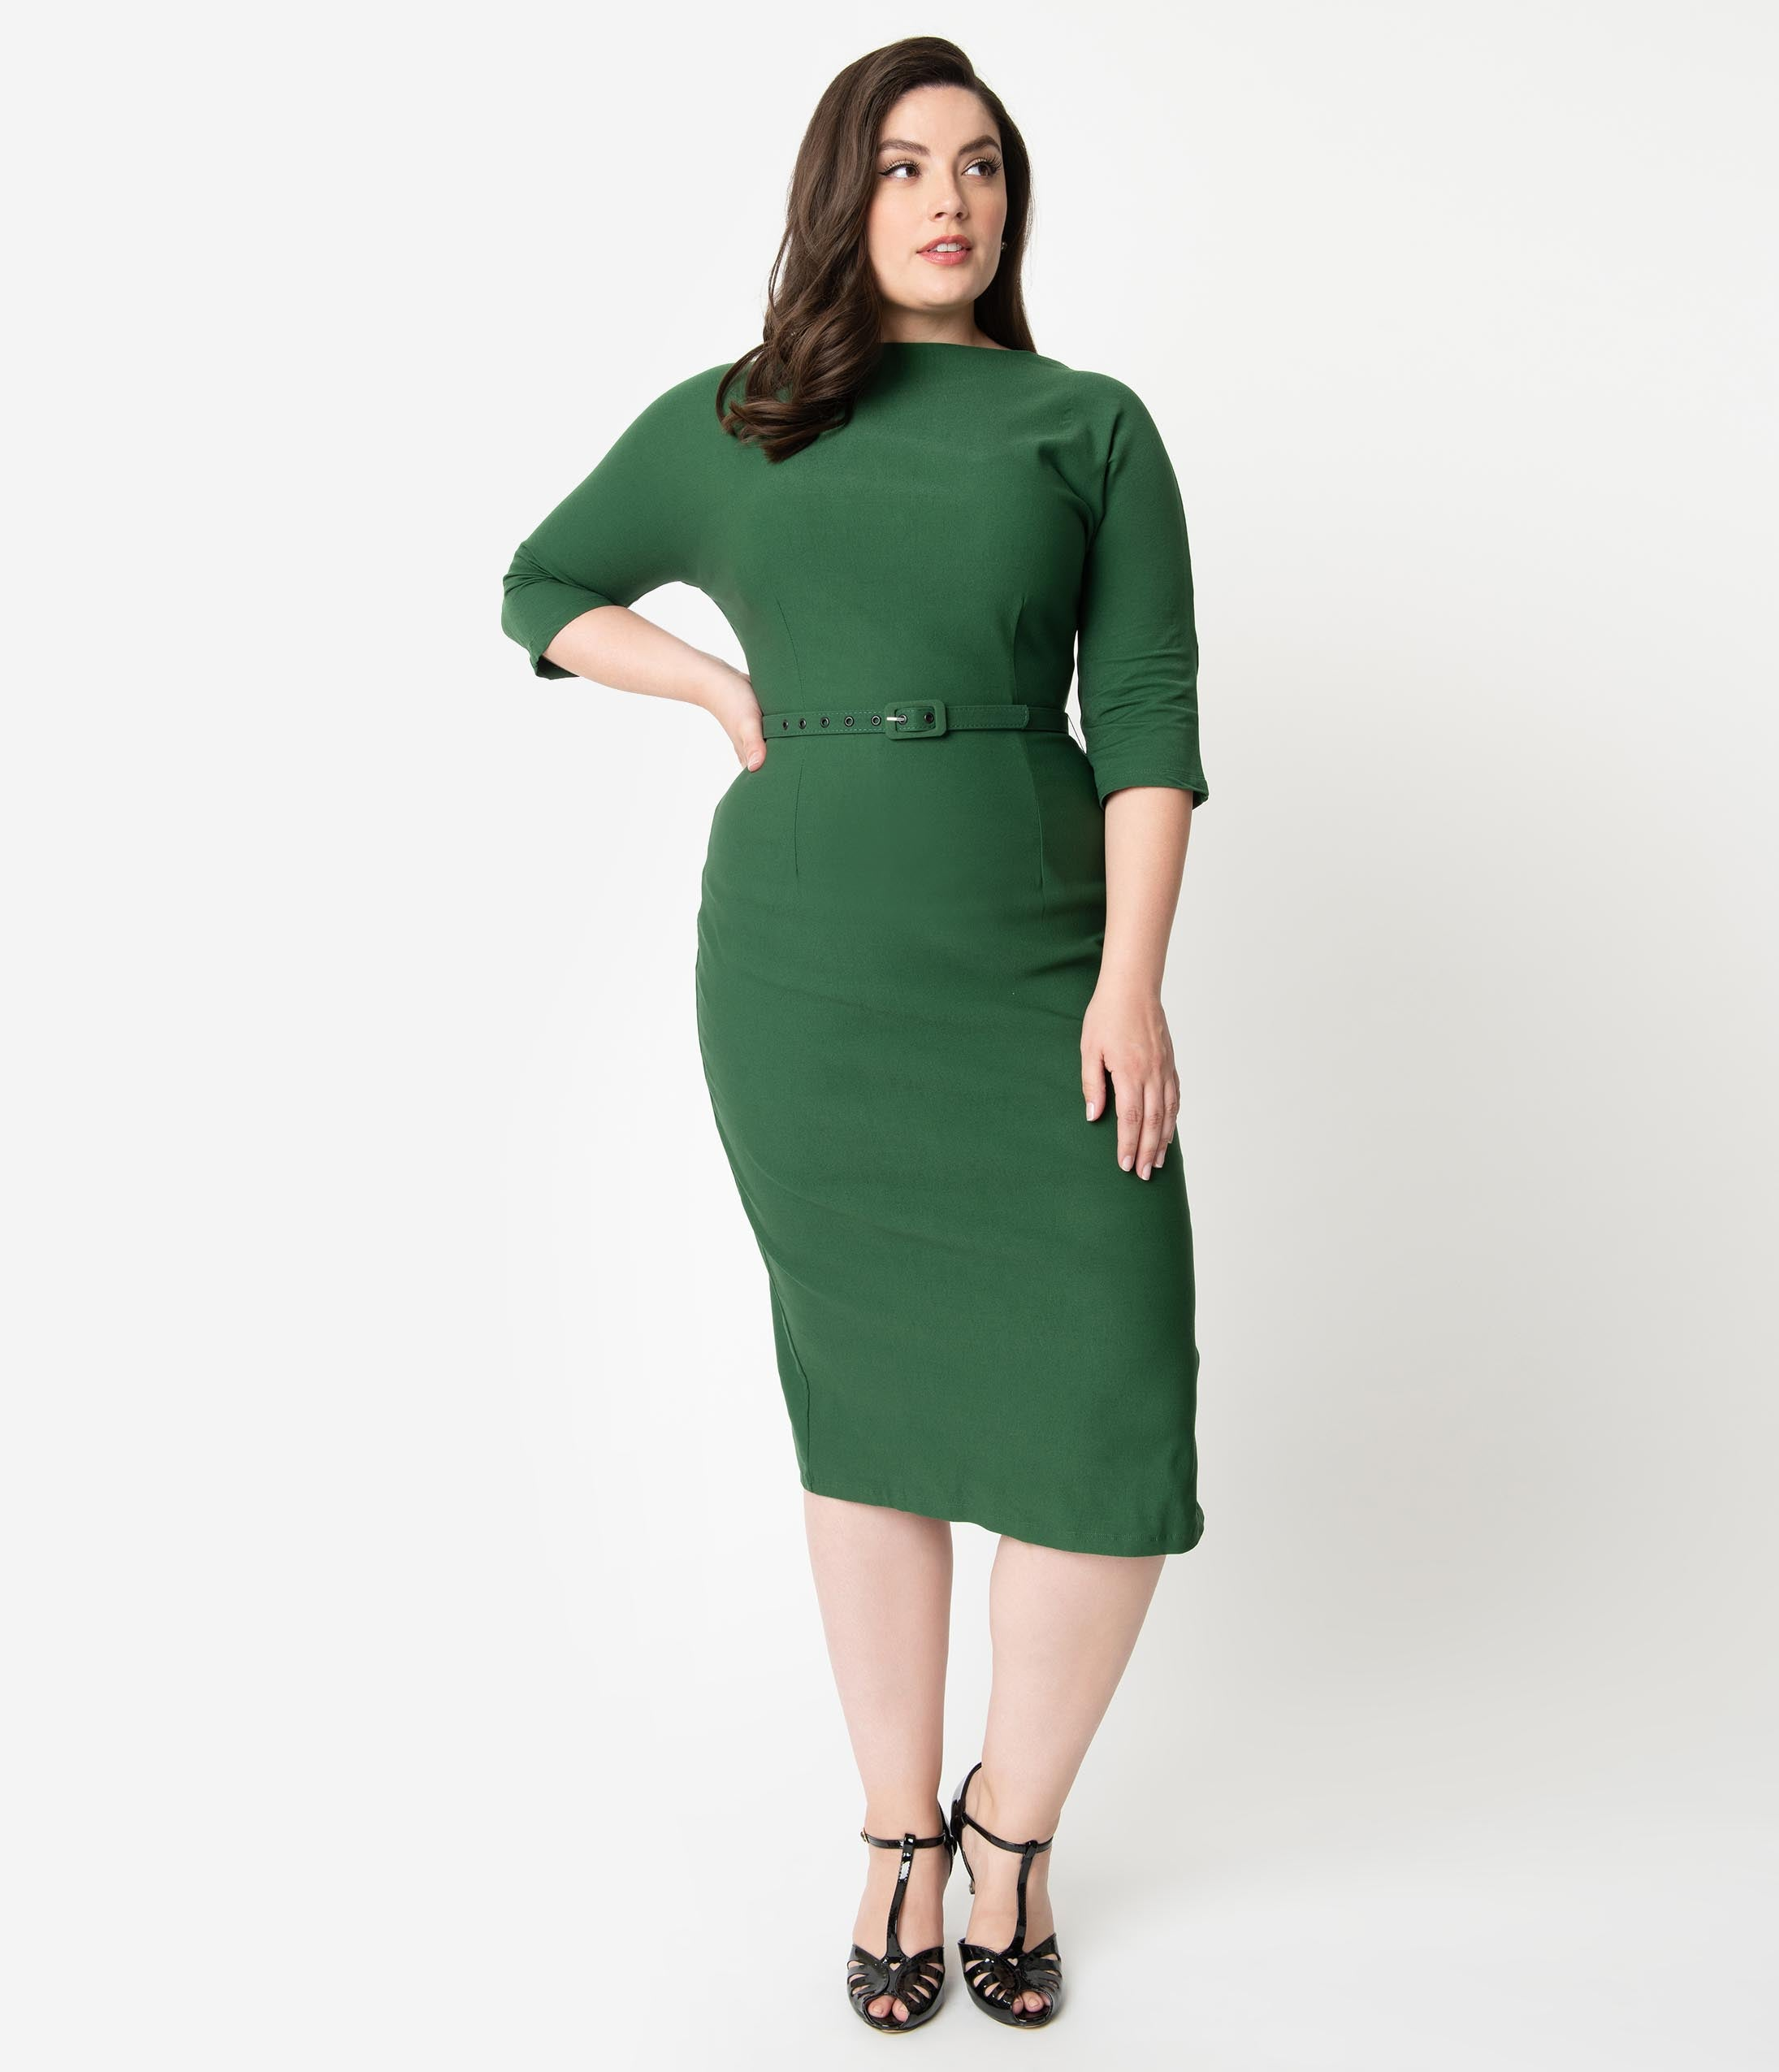 60s 70s Plus Size Dresses, Clothing, Costumes Unique Vintage Plus Size 1940S Style Green Stretch Sleeved Adelia Wiggle Dress $98.00 AT vintagedancer.com